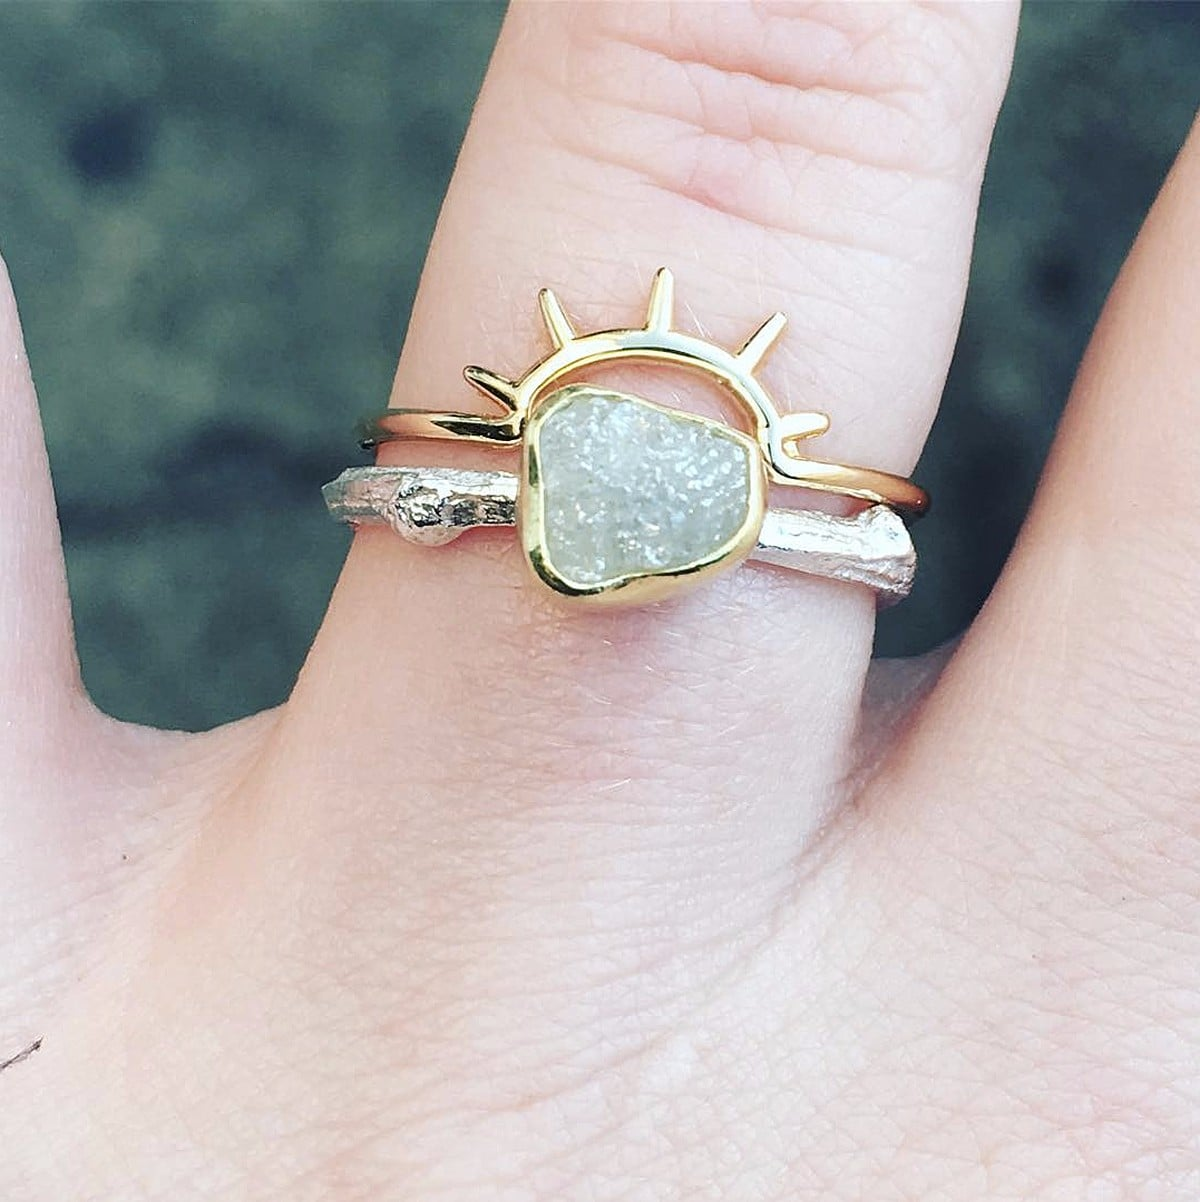 raw april rough ring gem white birthstone uncut rings gold promise engagement media diamond